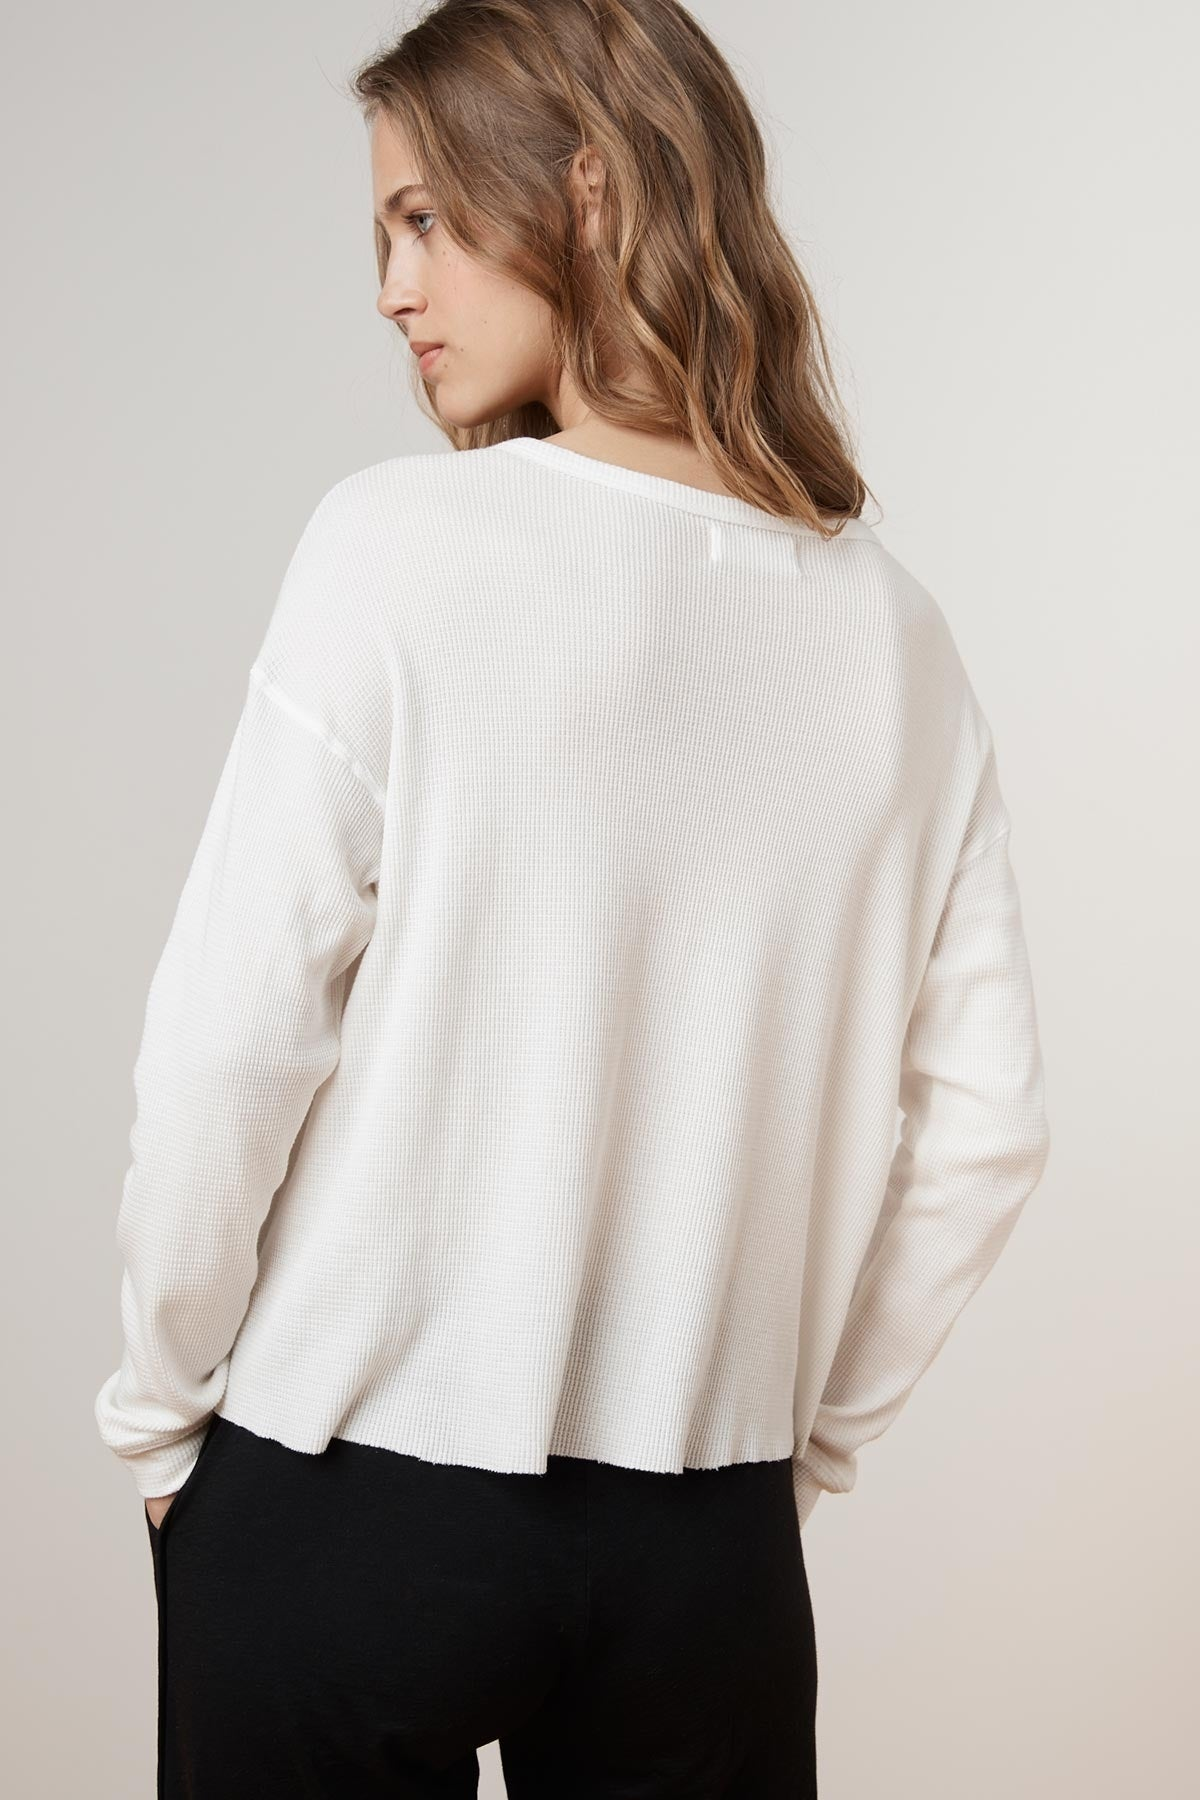 BUZZIE BABY THERMAL CROPPED LONG SLEEVE TOP